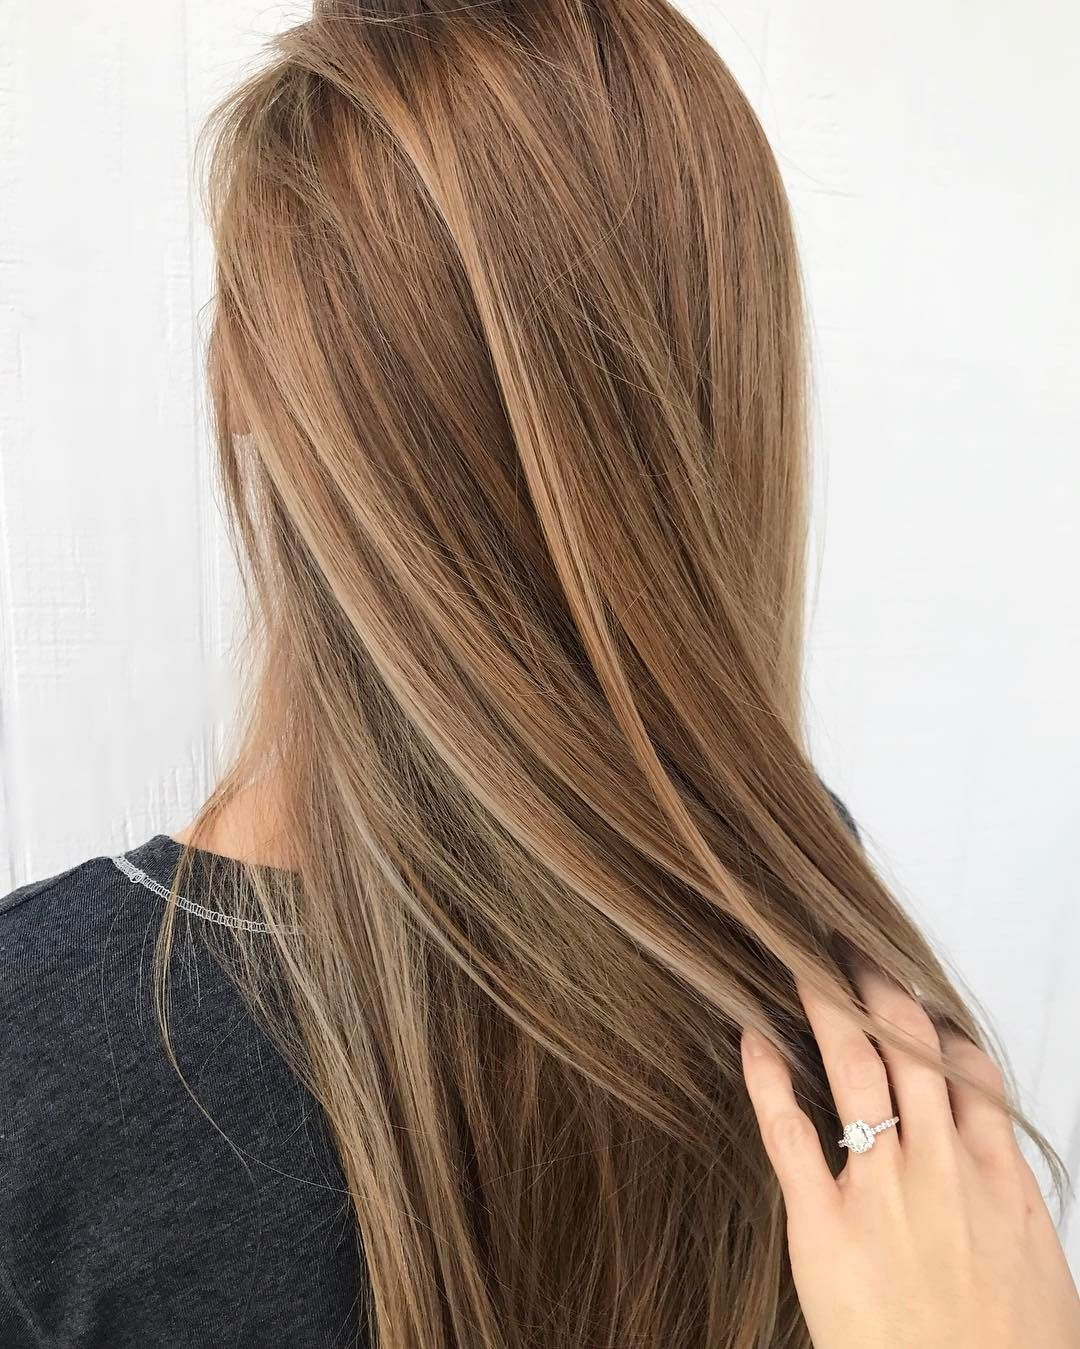 51 Blonde And Brown Hair Color